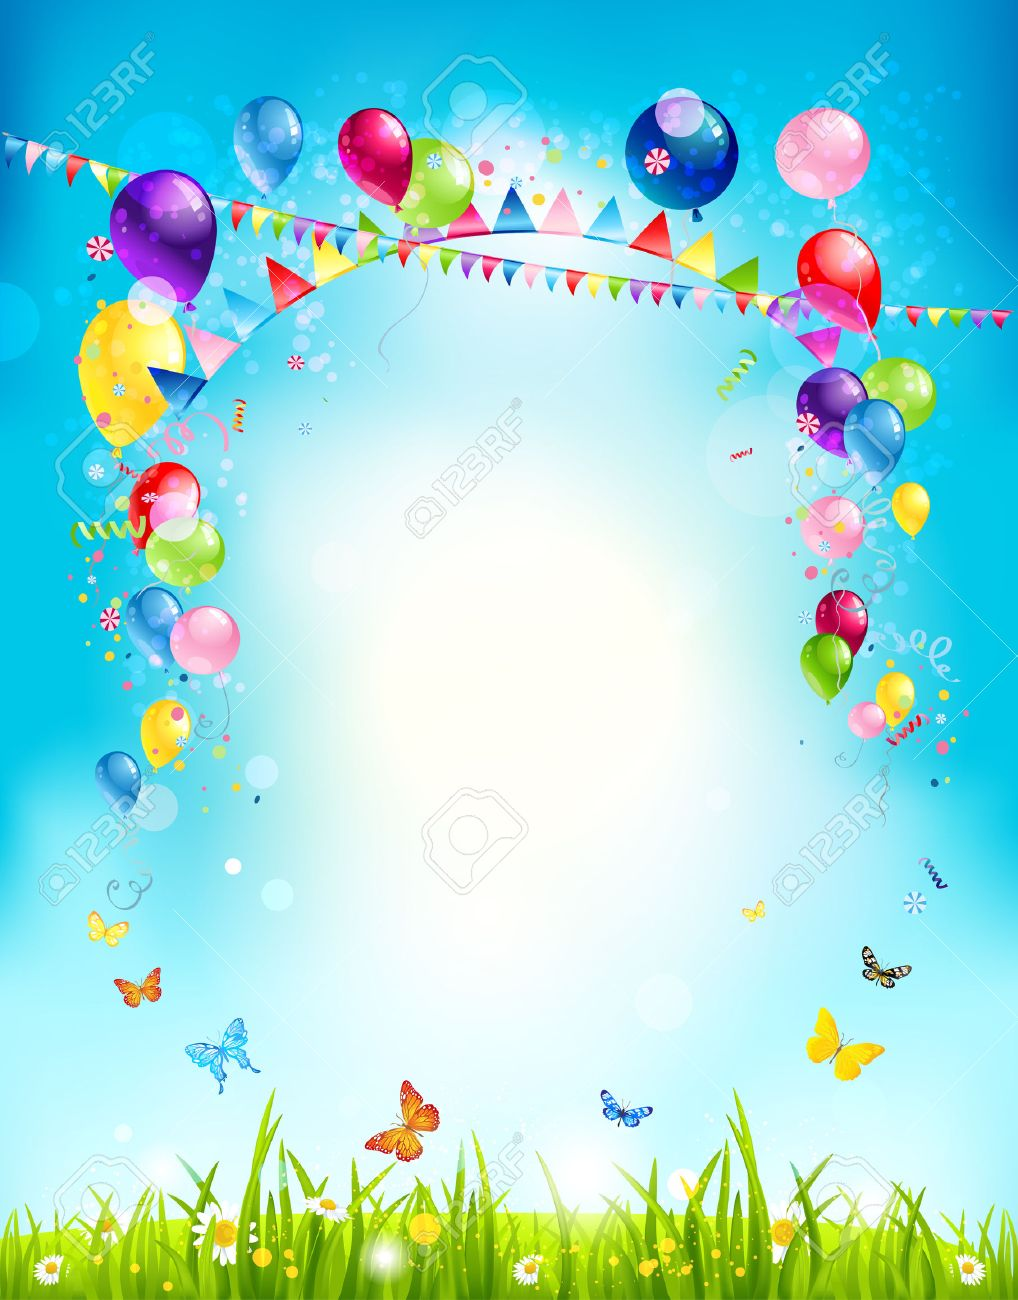 Summer holiday background with balloons and flags for advertising, leaflet, cards, invitation and so on. Copy space. - 41899812